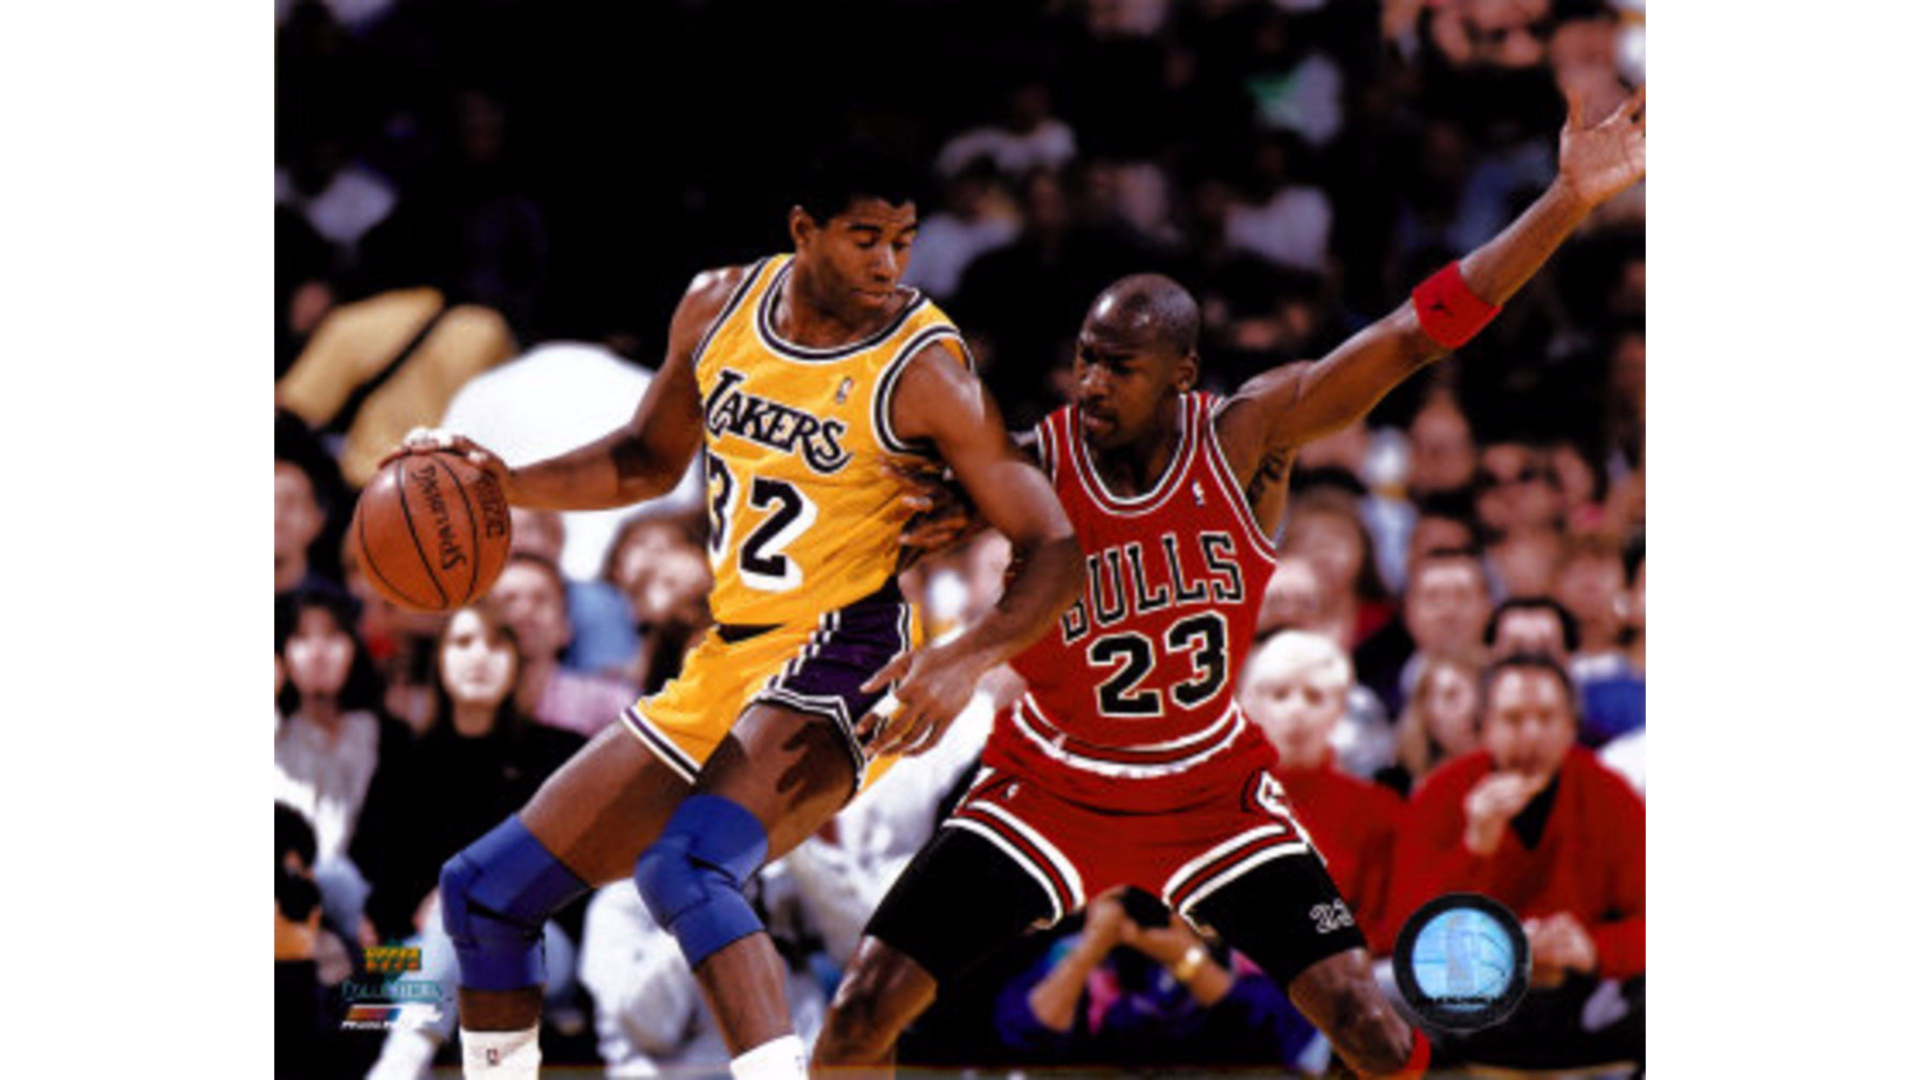 Free Download Magic Johnson Vs Michael Jordan 4k Wallpaper 4k Wallpaper 3840x2160 For Your Desktop Mobile Tablet Explore 43 Jordan Wallpaper 4k Jordan Hd Wallpaper Chicago Bulls Wallpaper Michael